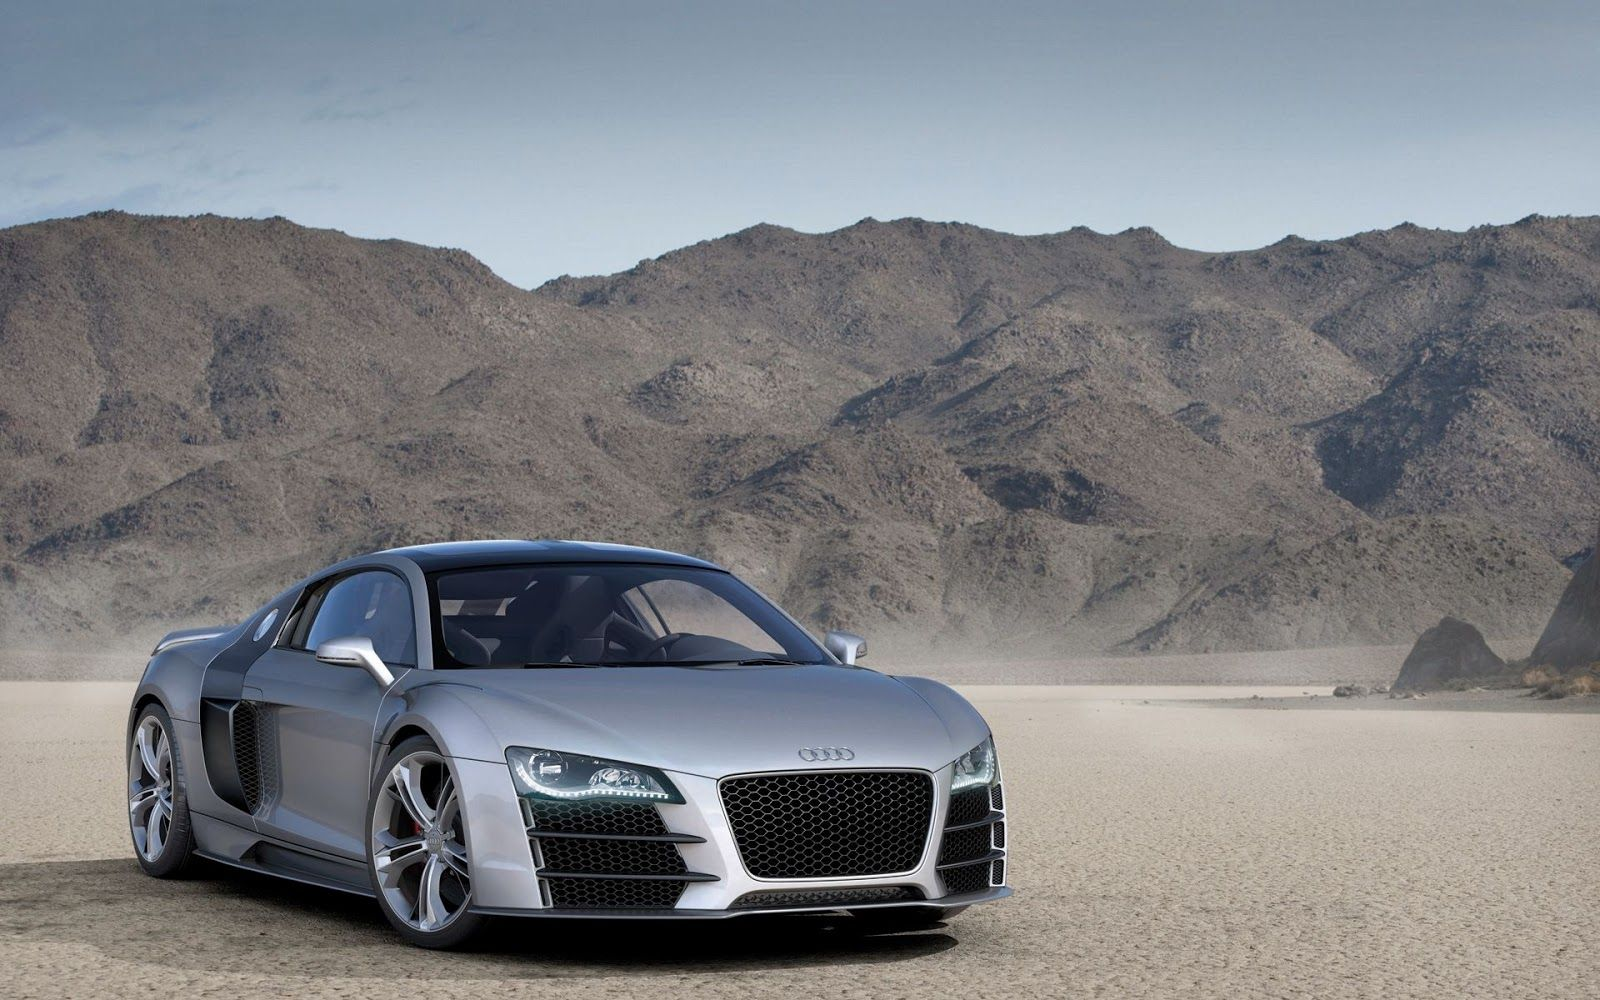 Audi Cars Wallpapers Free Download Hd New Latest Motors Images X Audi Car Images